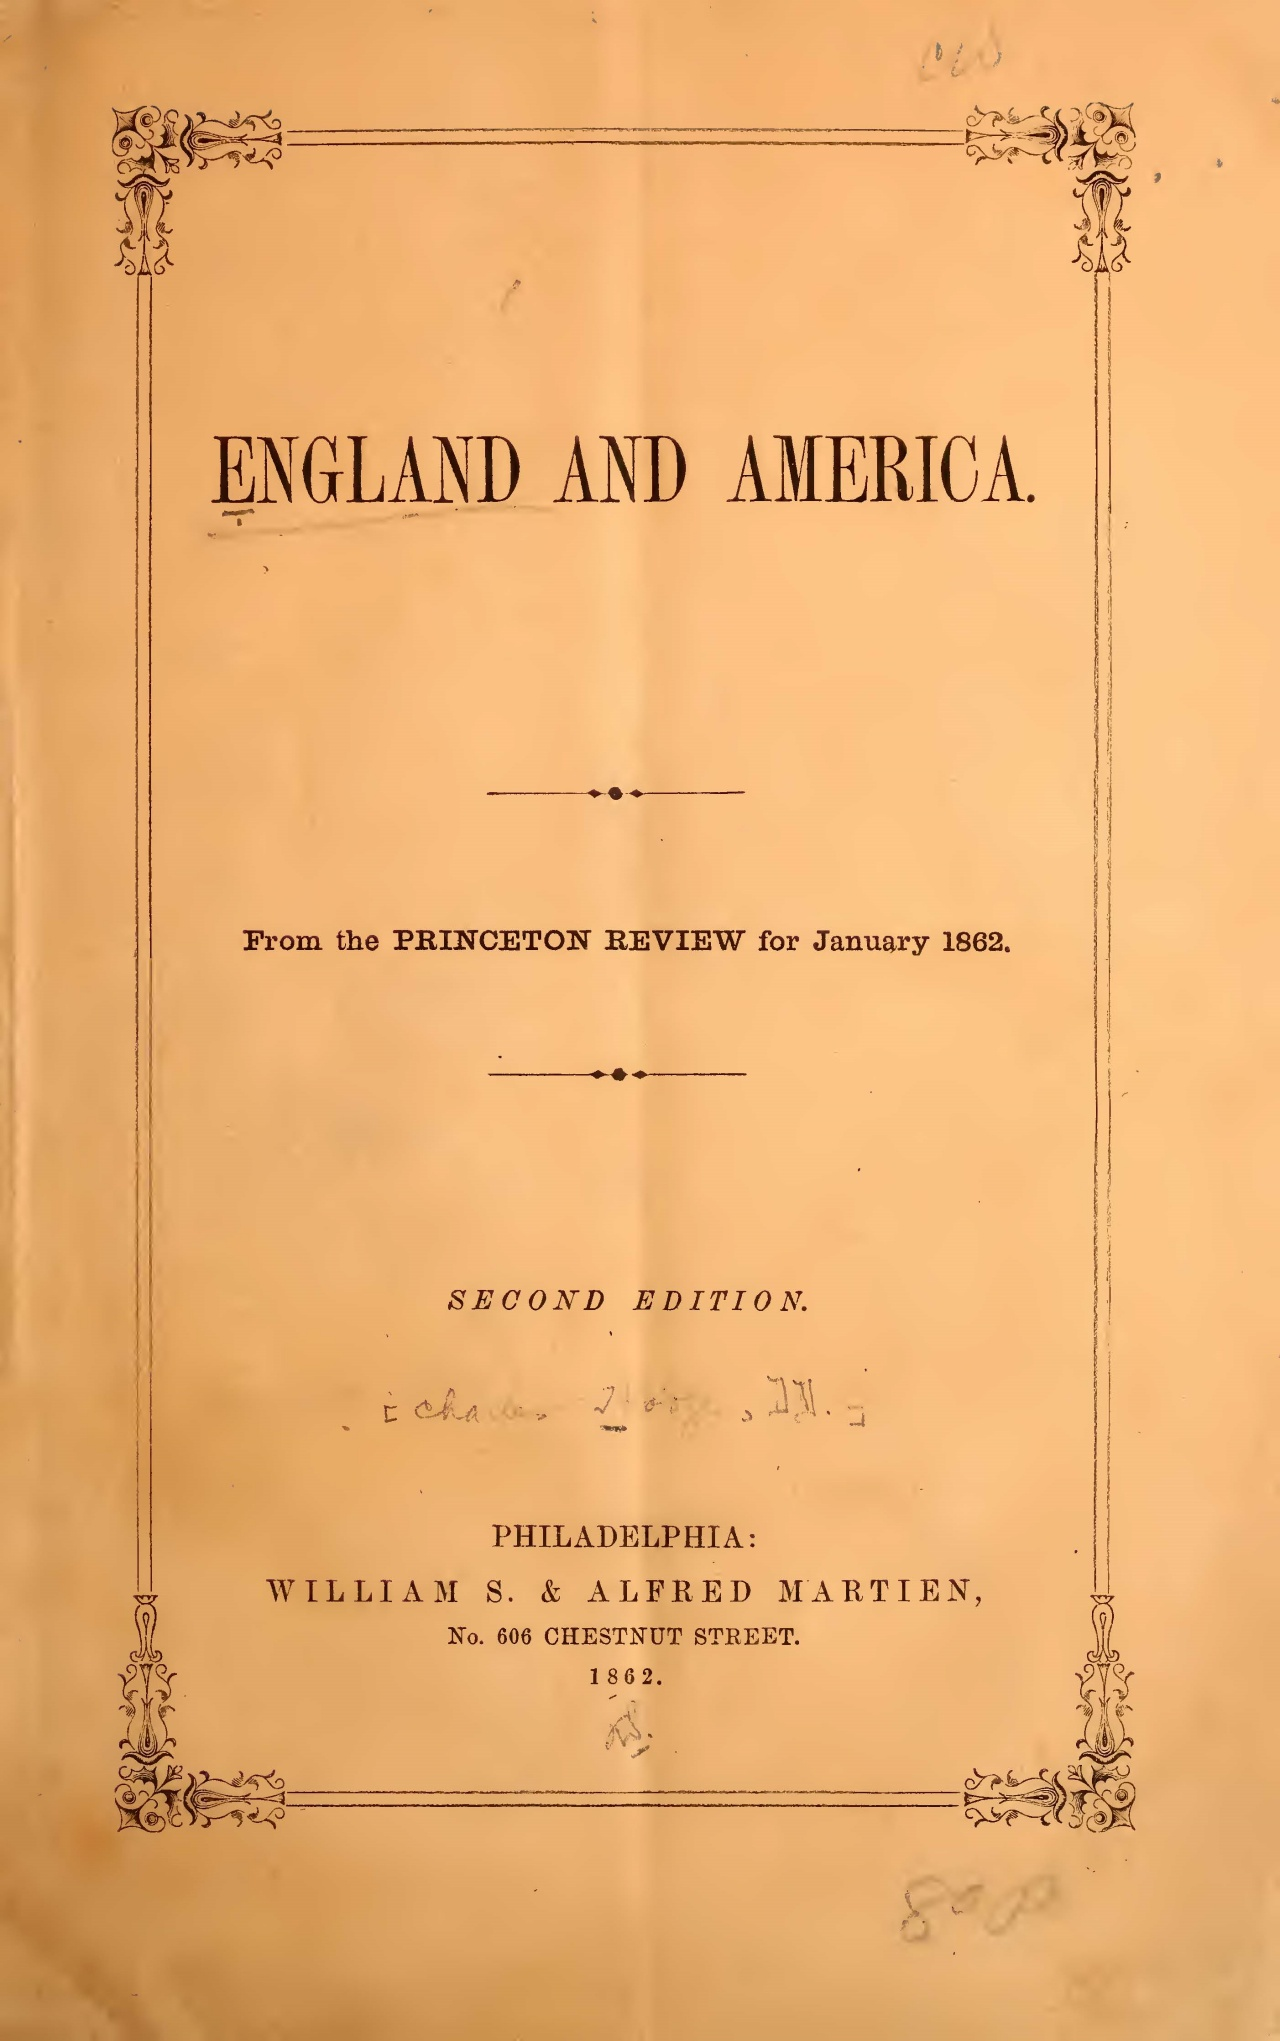 Hodge, Charles, England and America Title Page.jpg